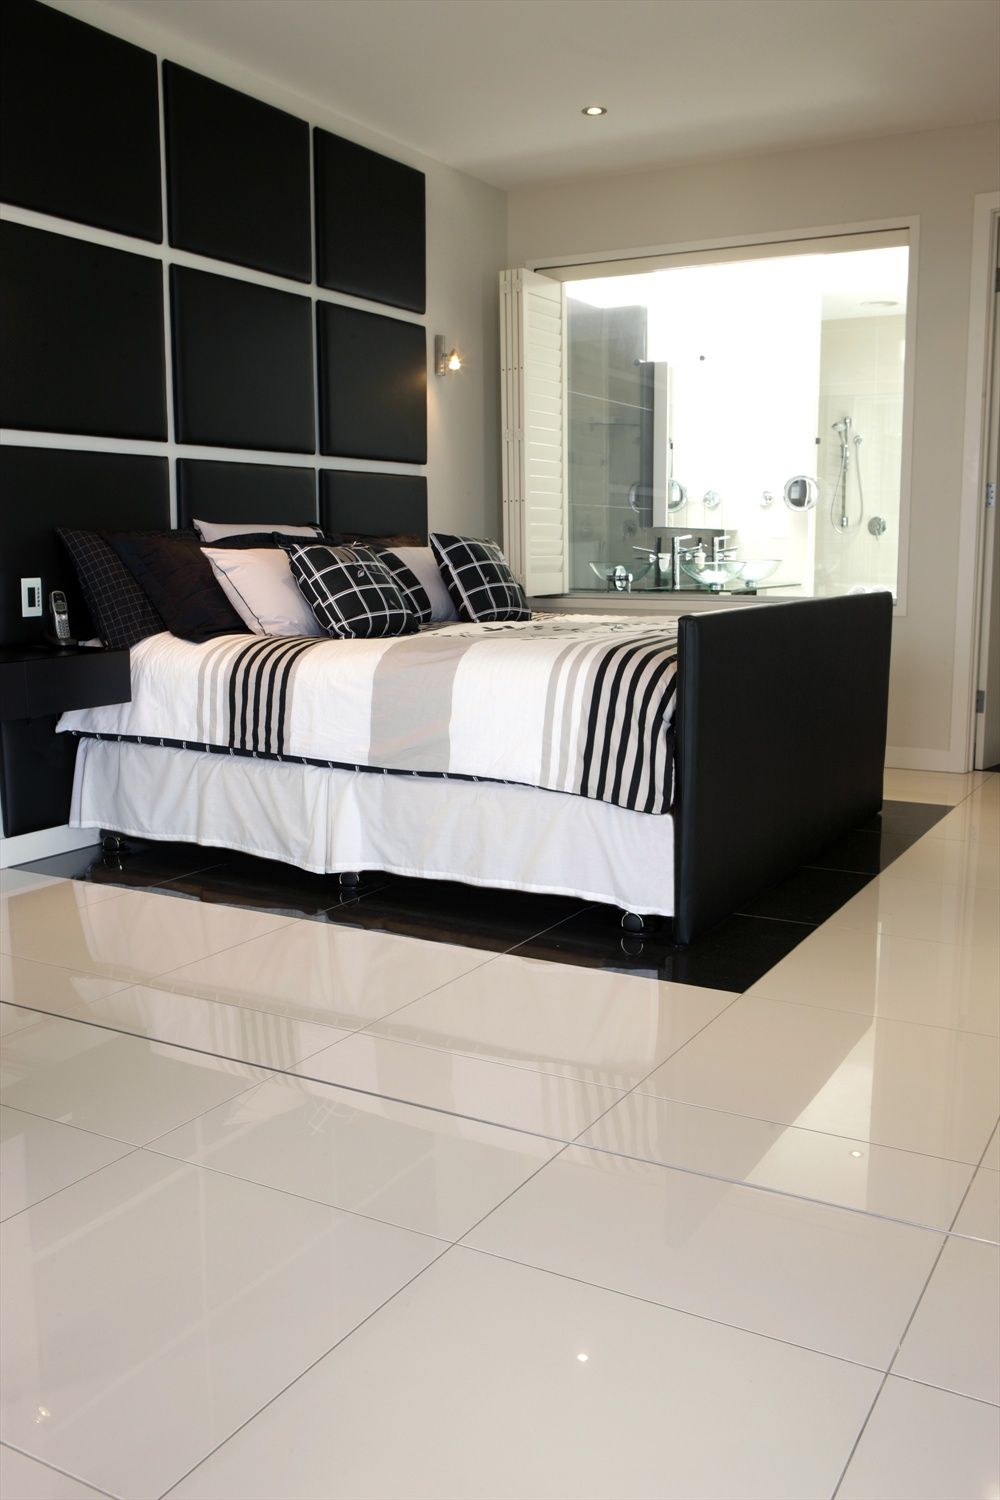 What do you think of this Bedrooms tile idea I got from Beaumont